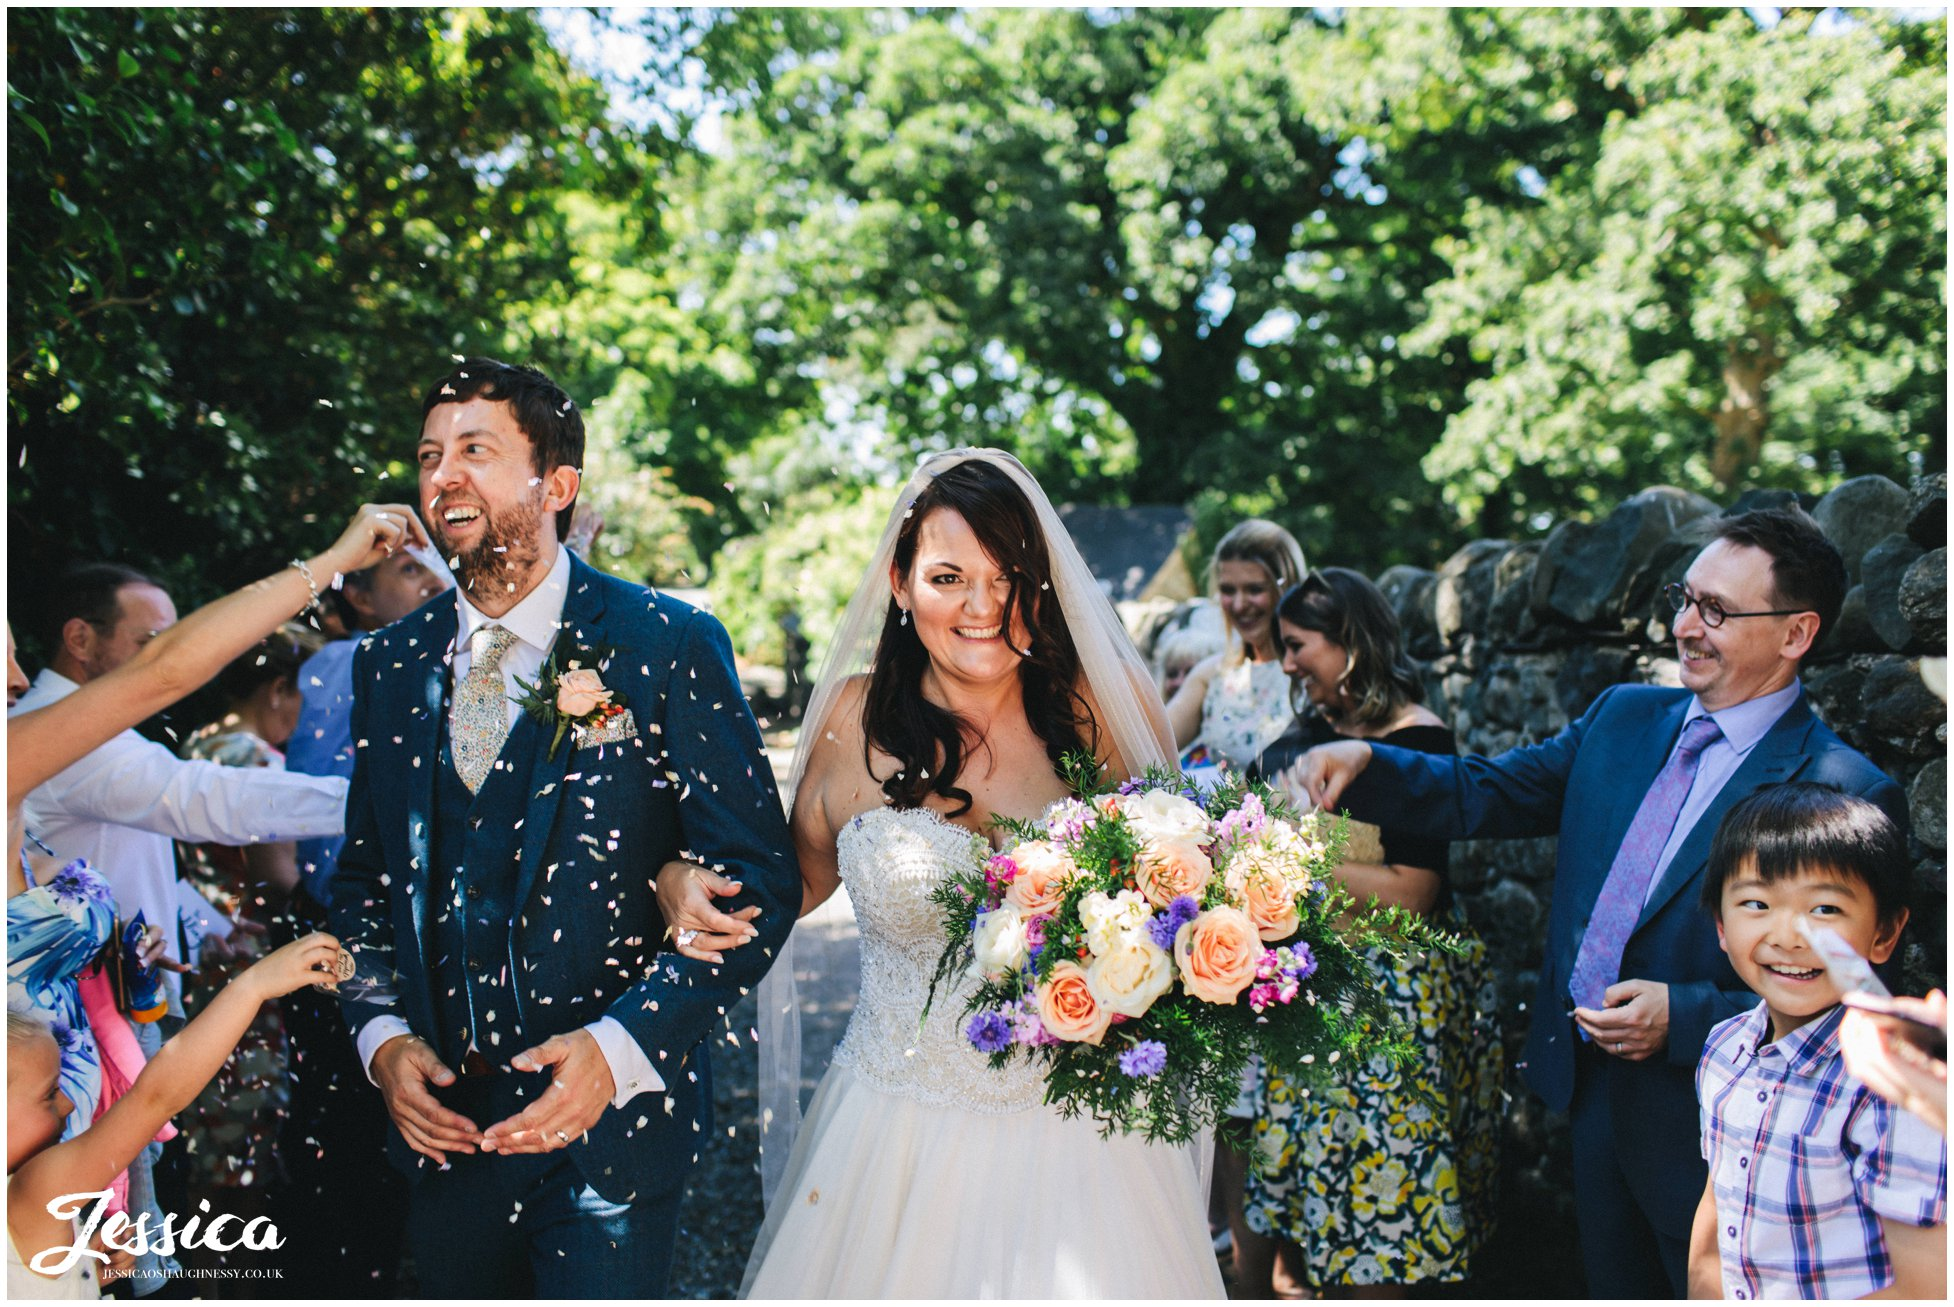 the newly wed's get showered with confetti after their wedding ceremony